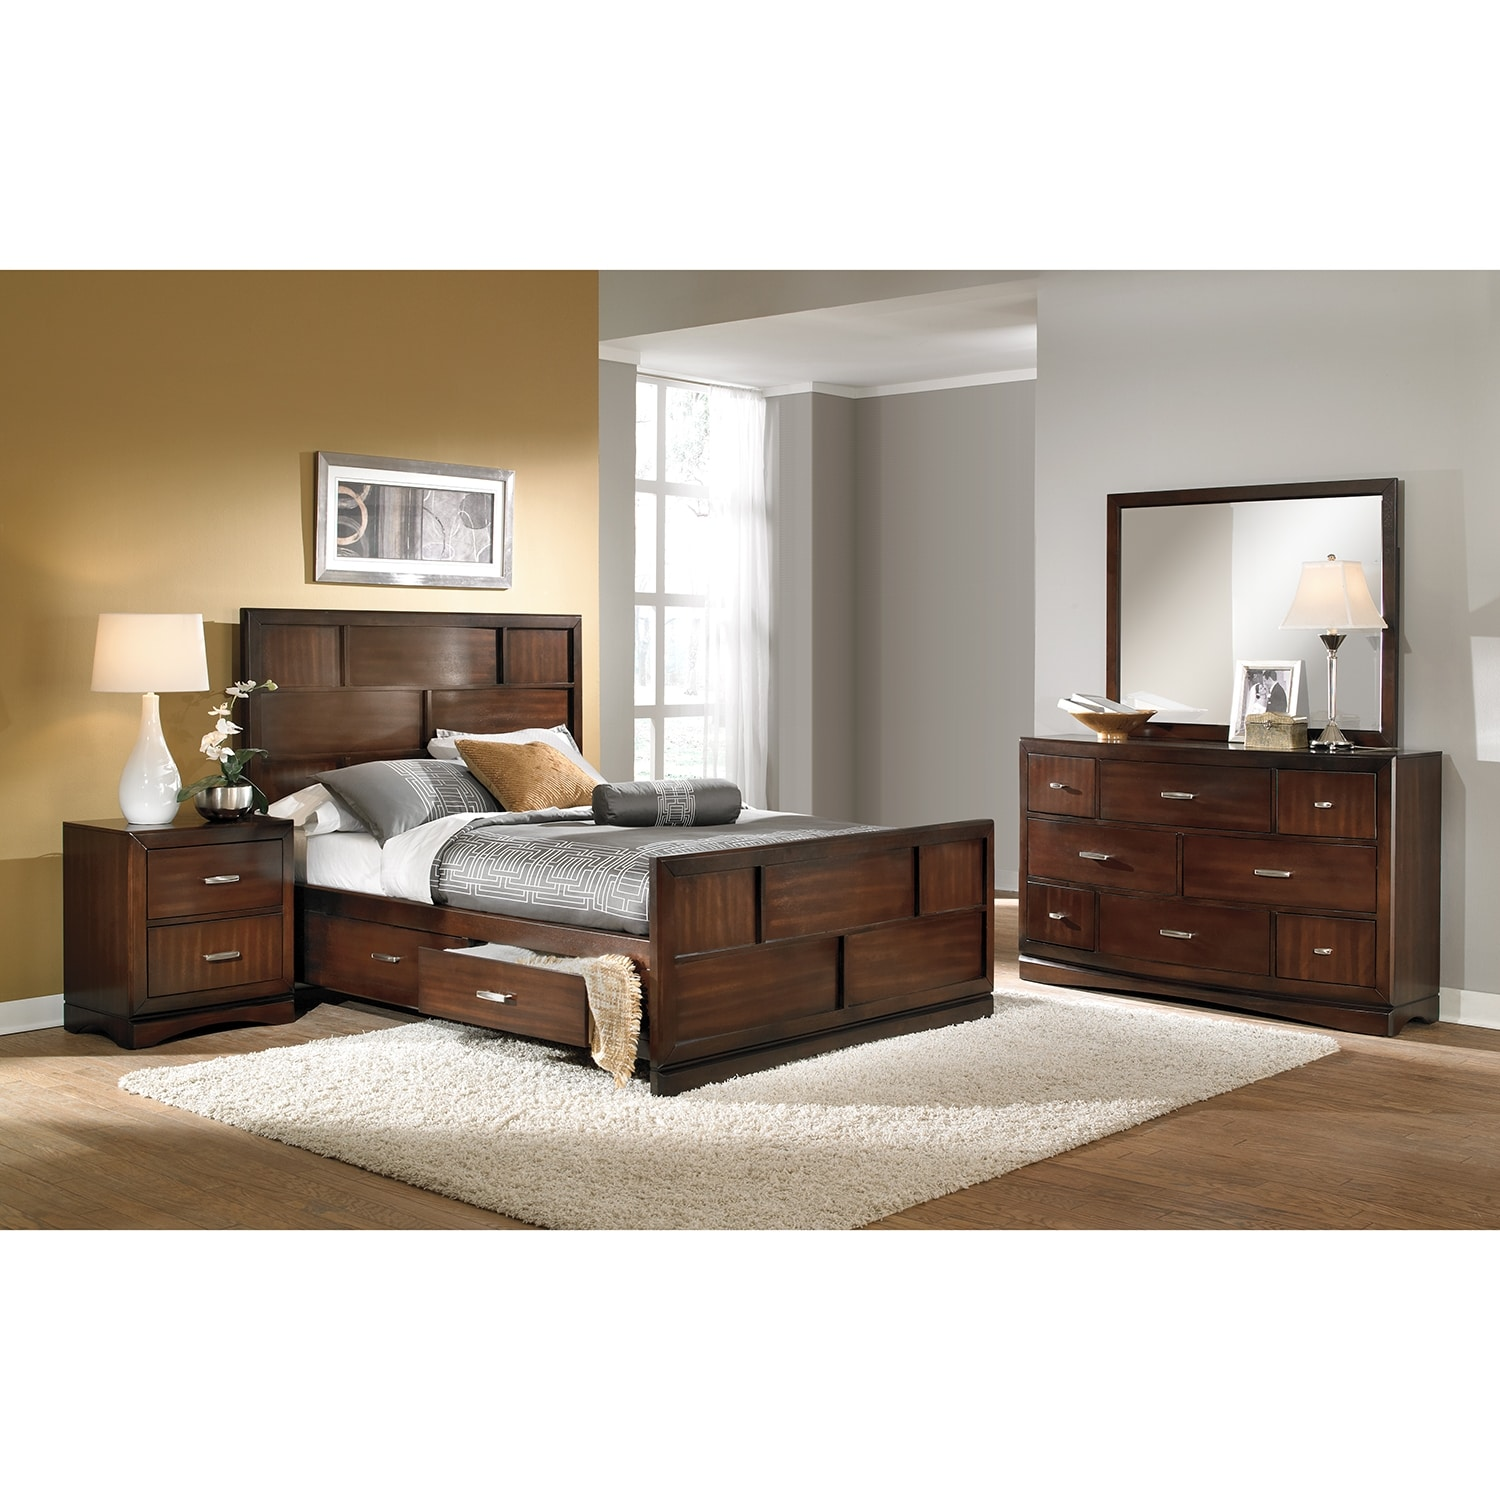 Toronto 6-Piece King Storage Bedroom Set - Pecan